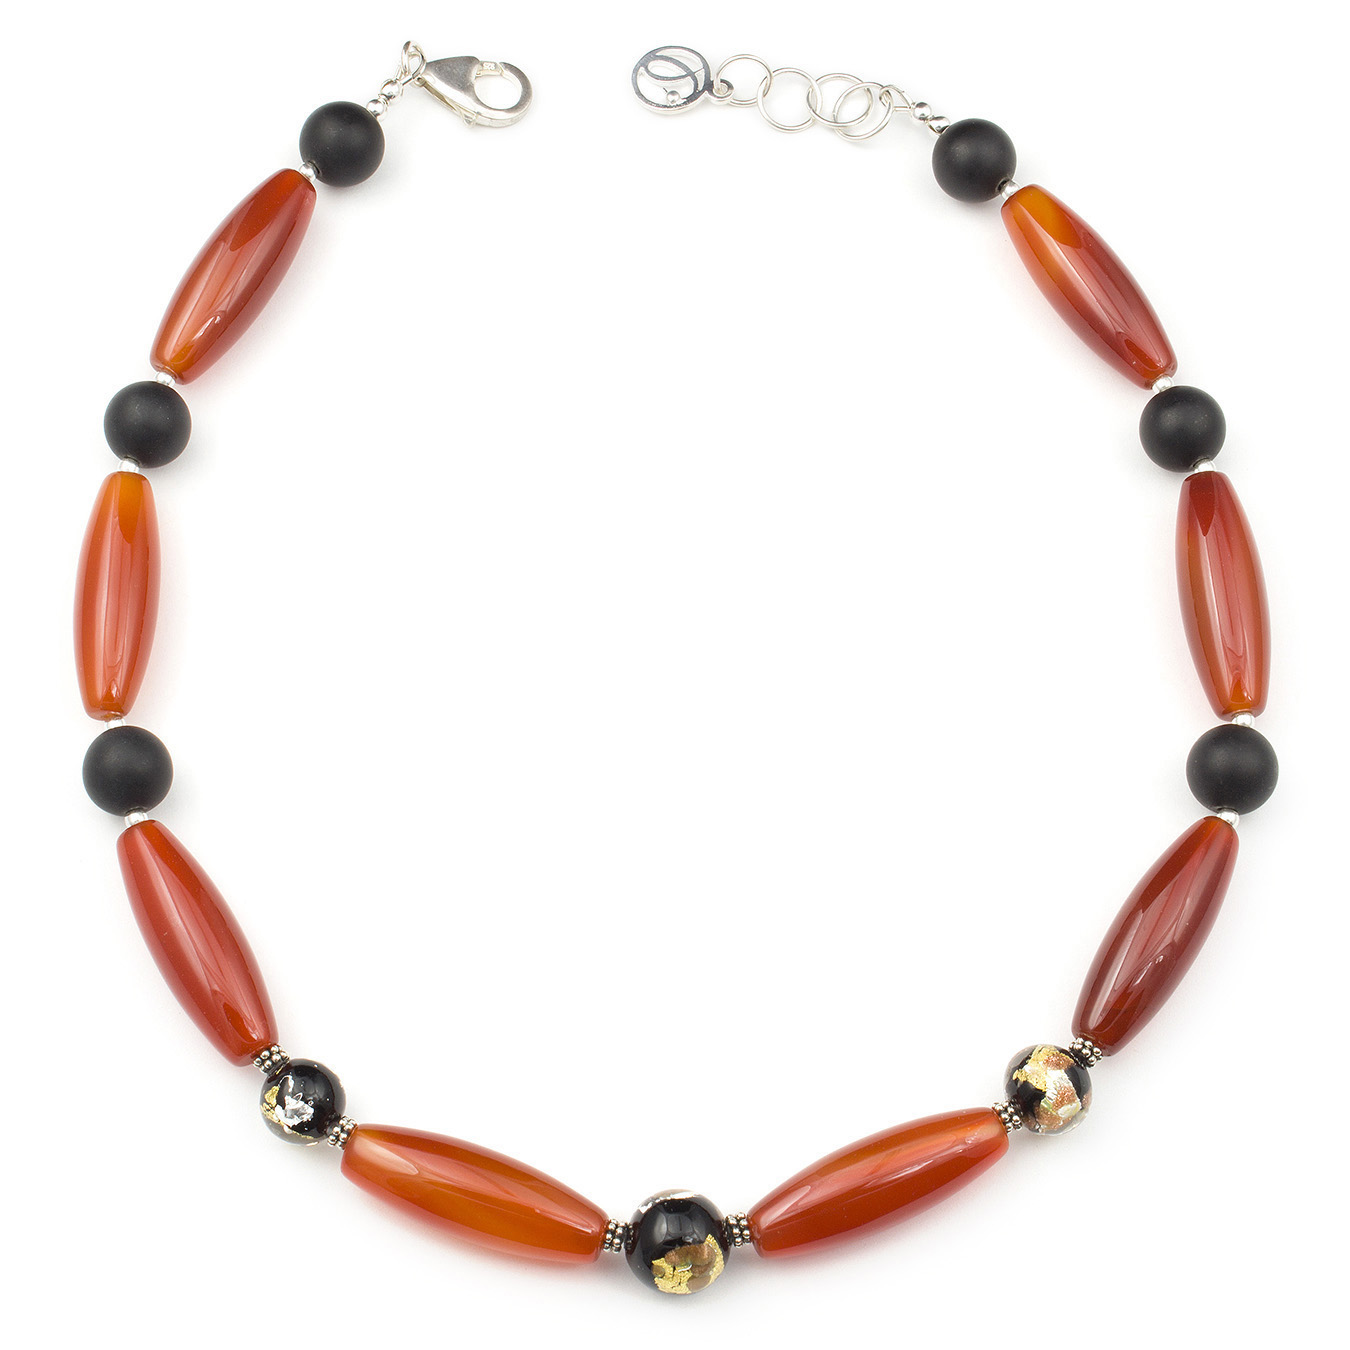 Create your own necklace with jasper, red and black agate and Murano